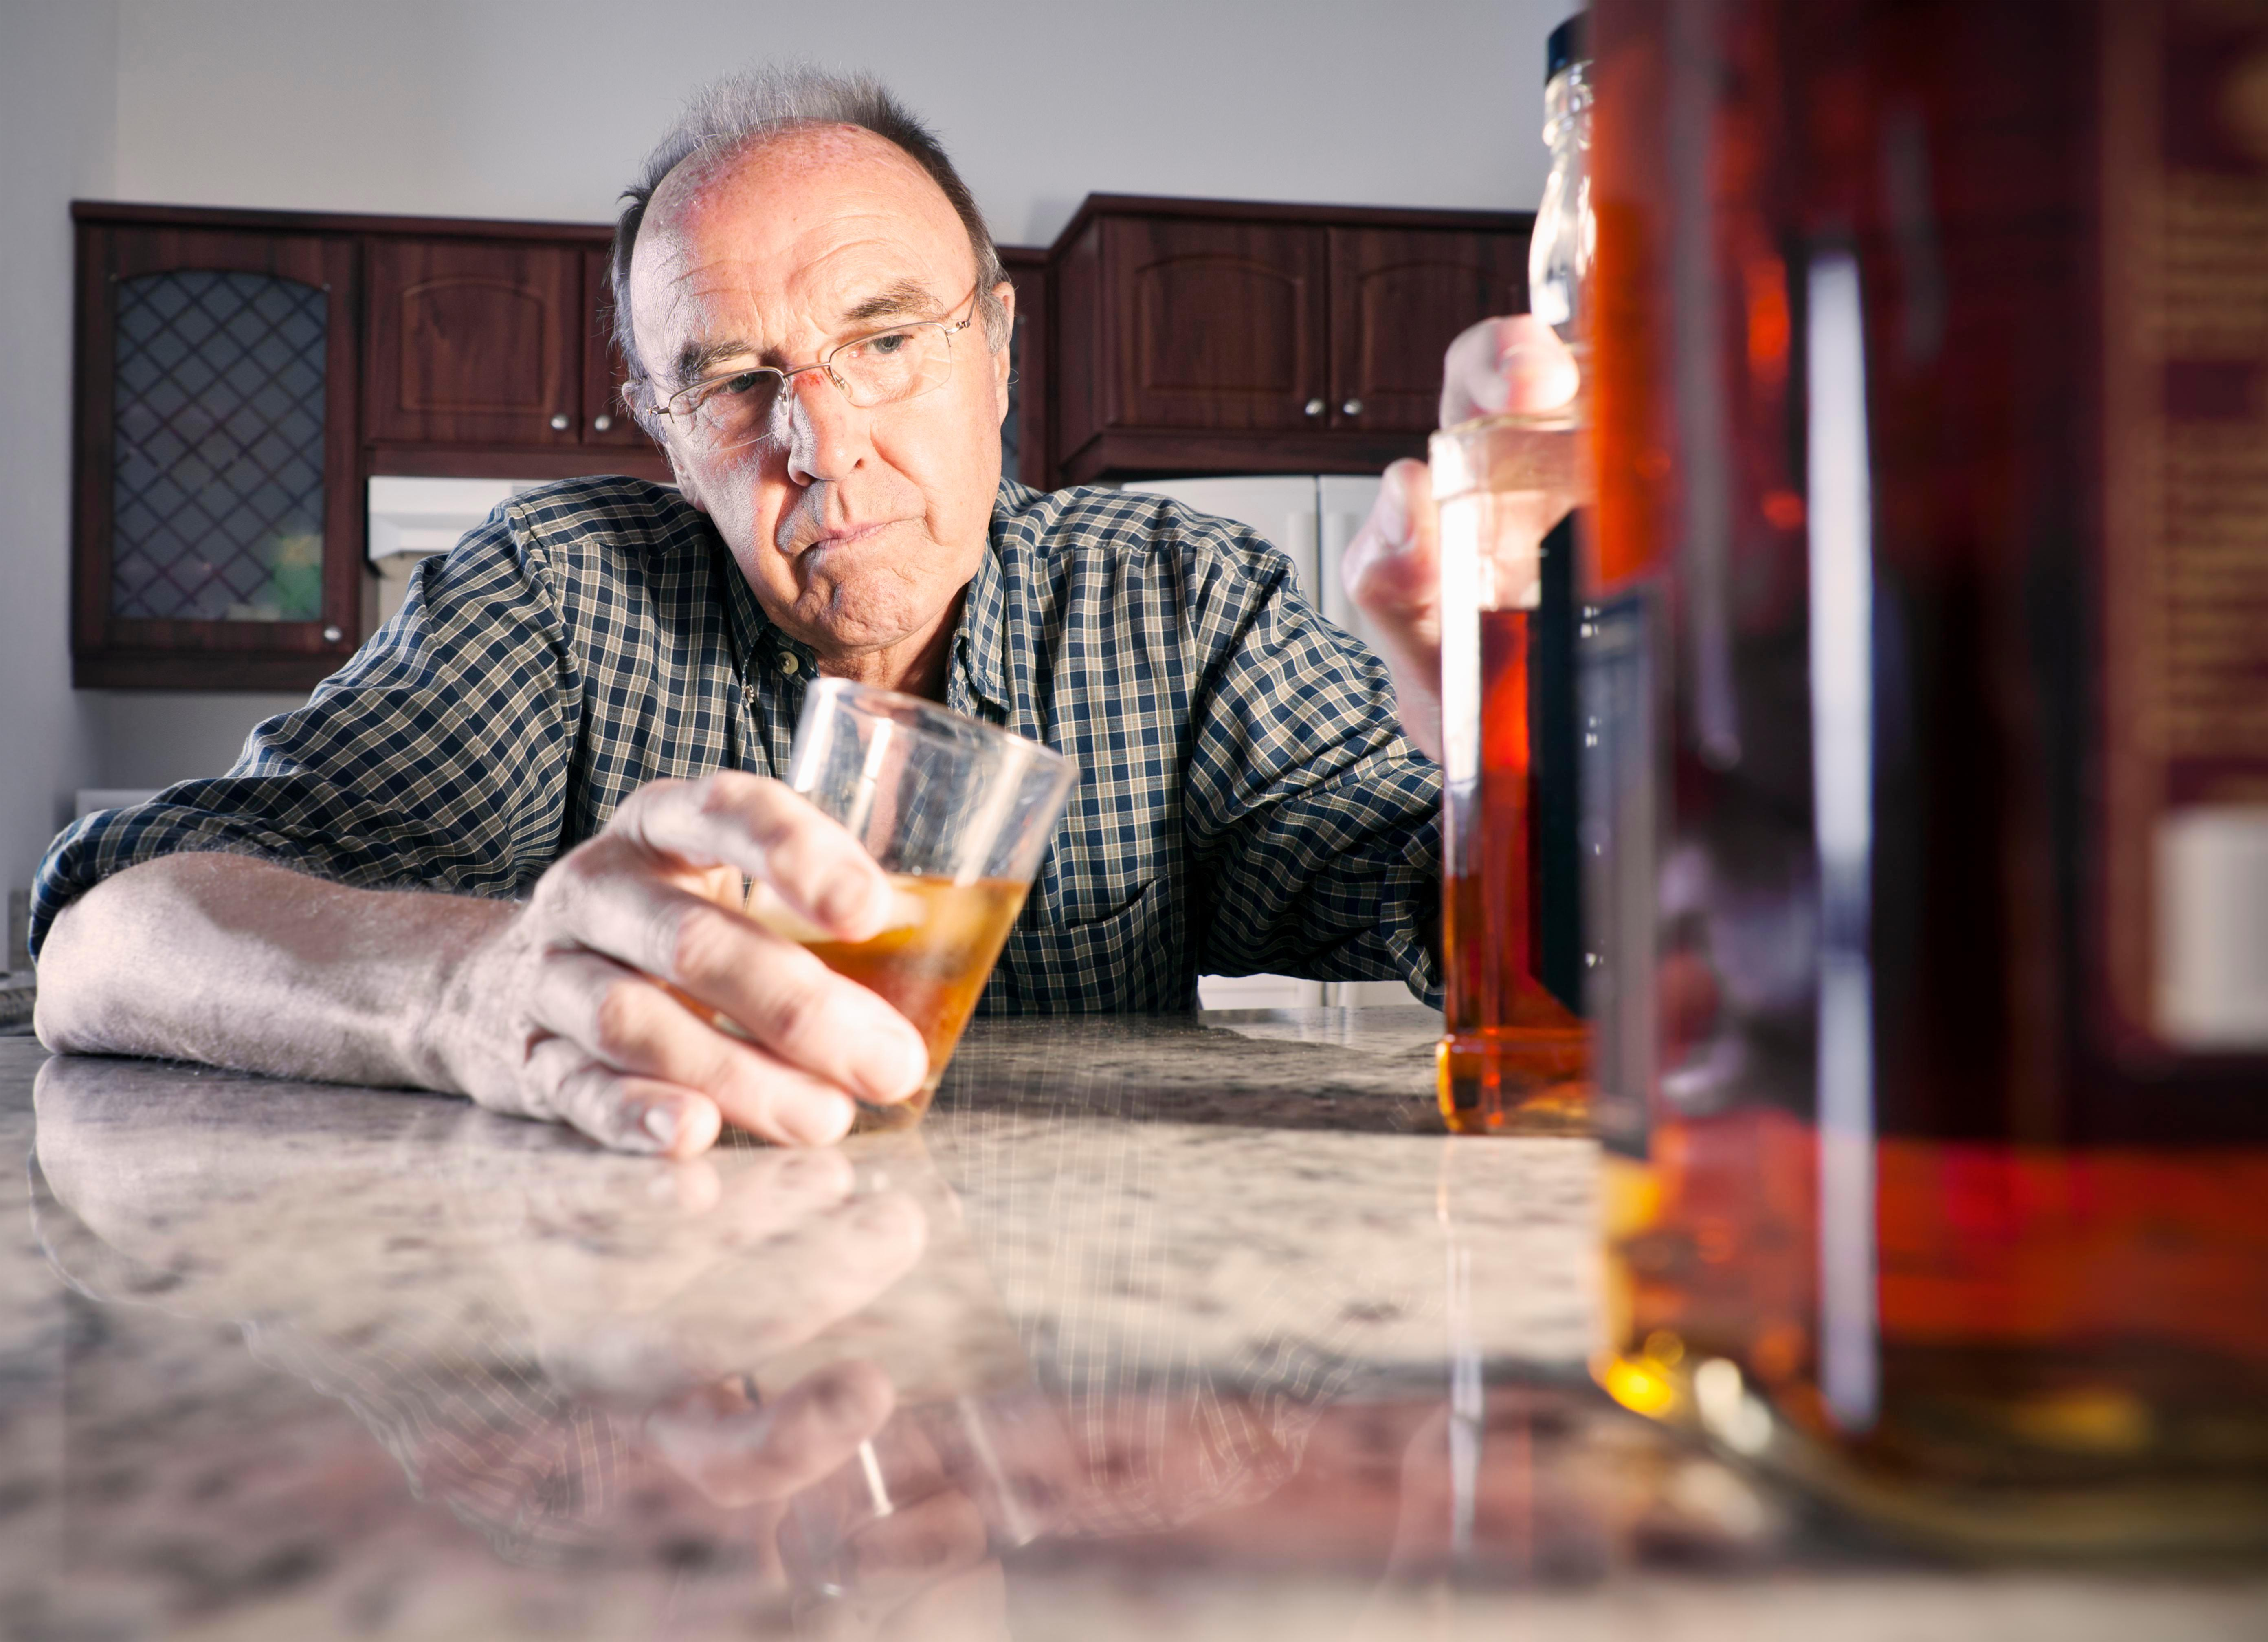 More than half of early-onset dementia cases are caused by heavy drinking, research warns